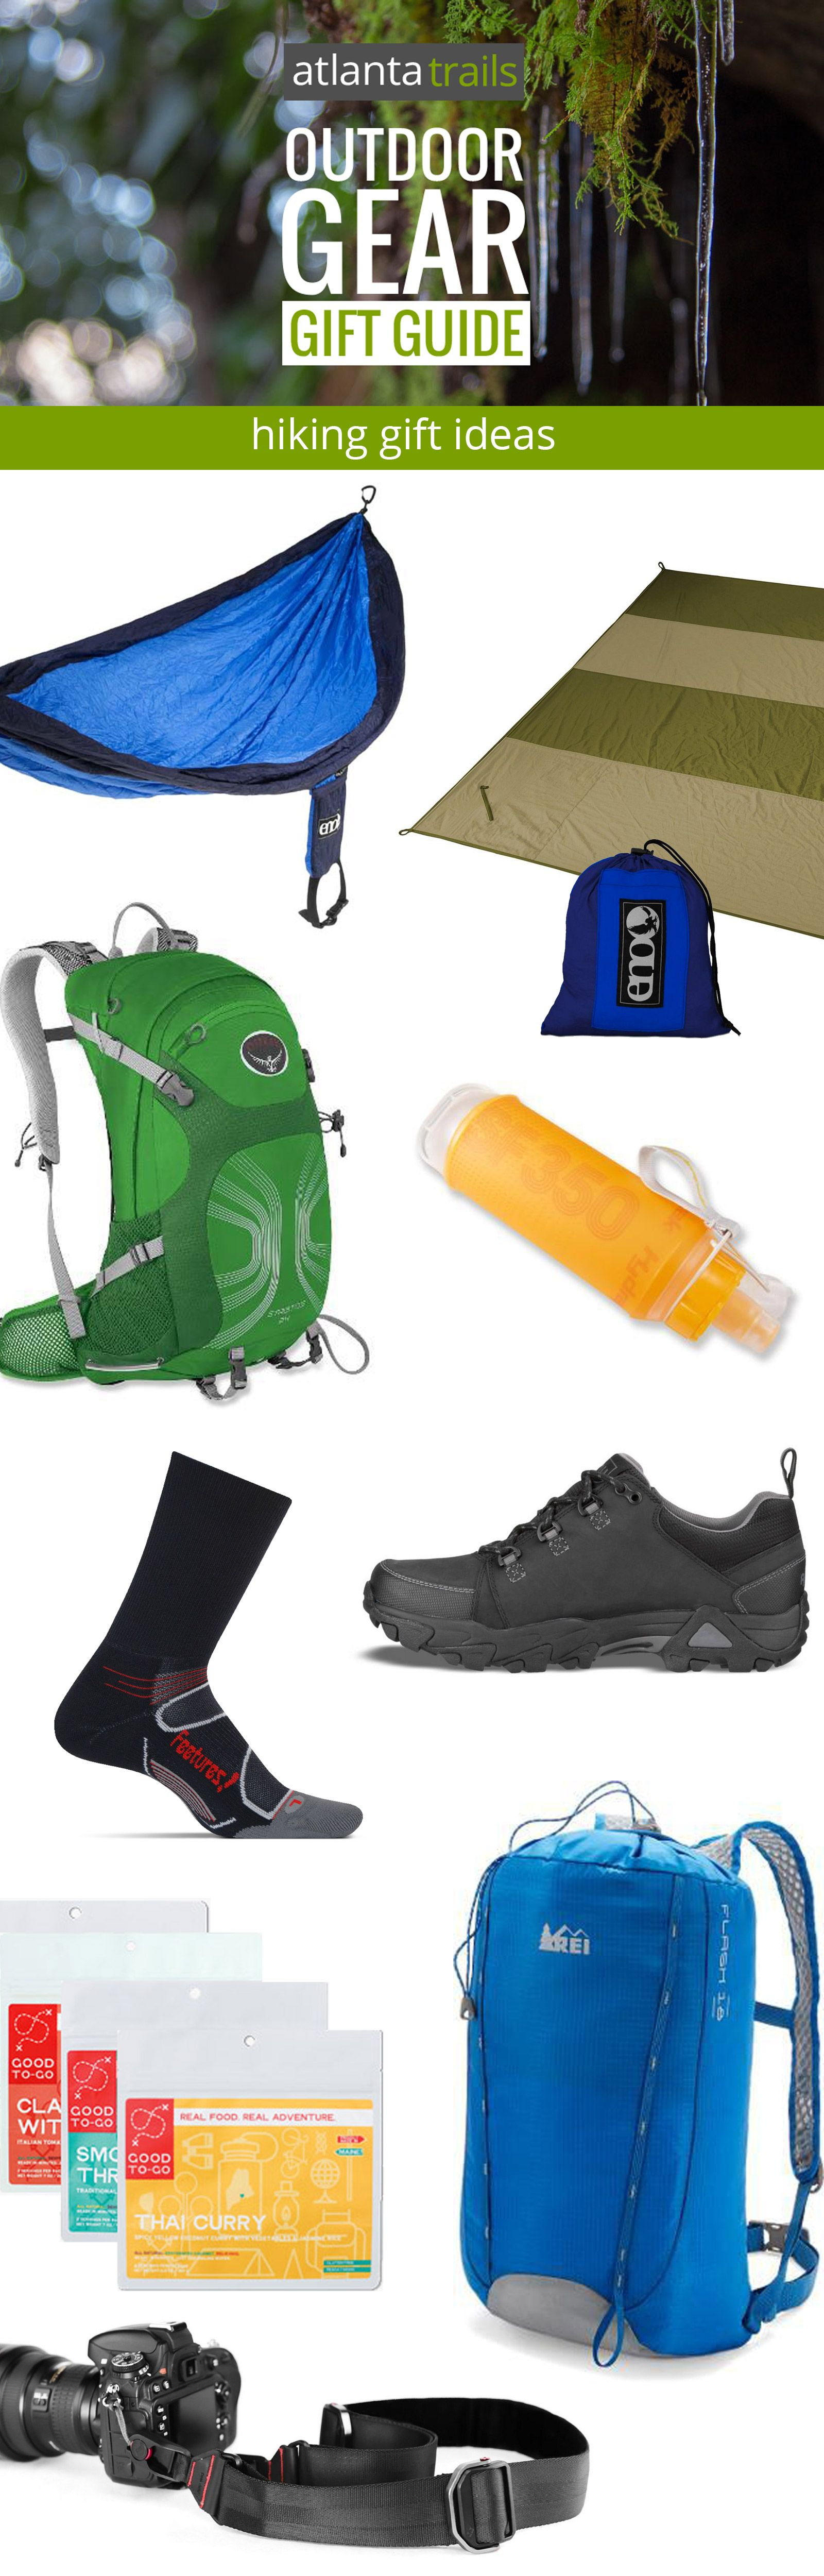 Looking for gift ideas for a hiker on your list  Our hiking gift guide  features our trail-tested favorite hiking gear 816451b95f098